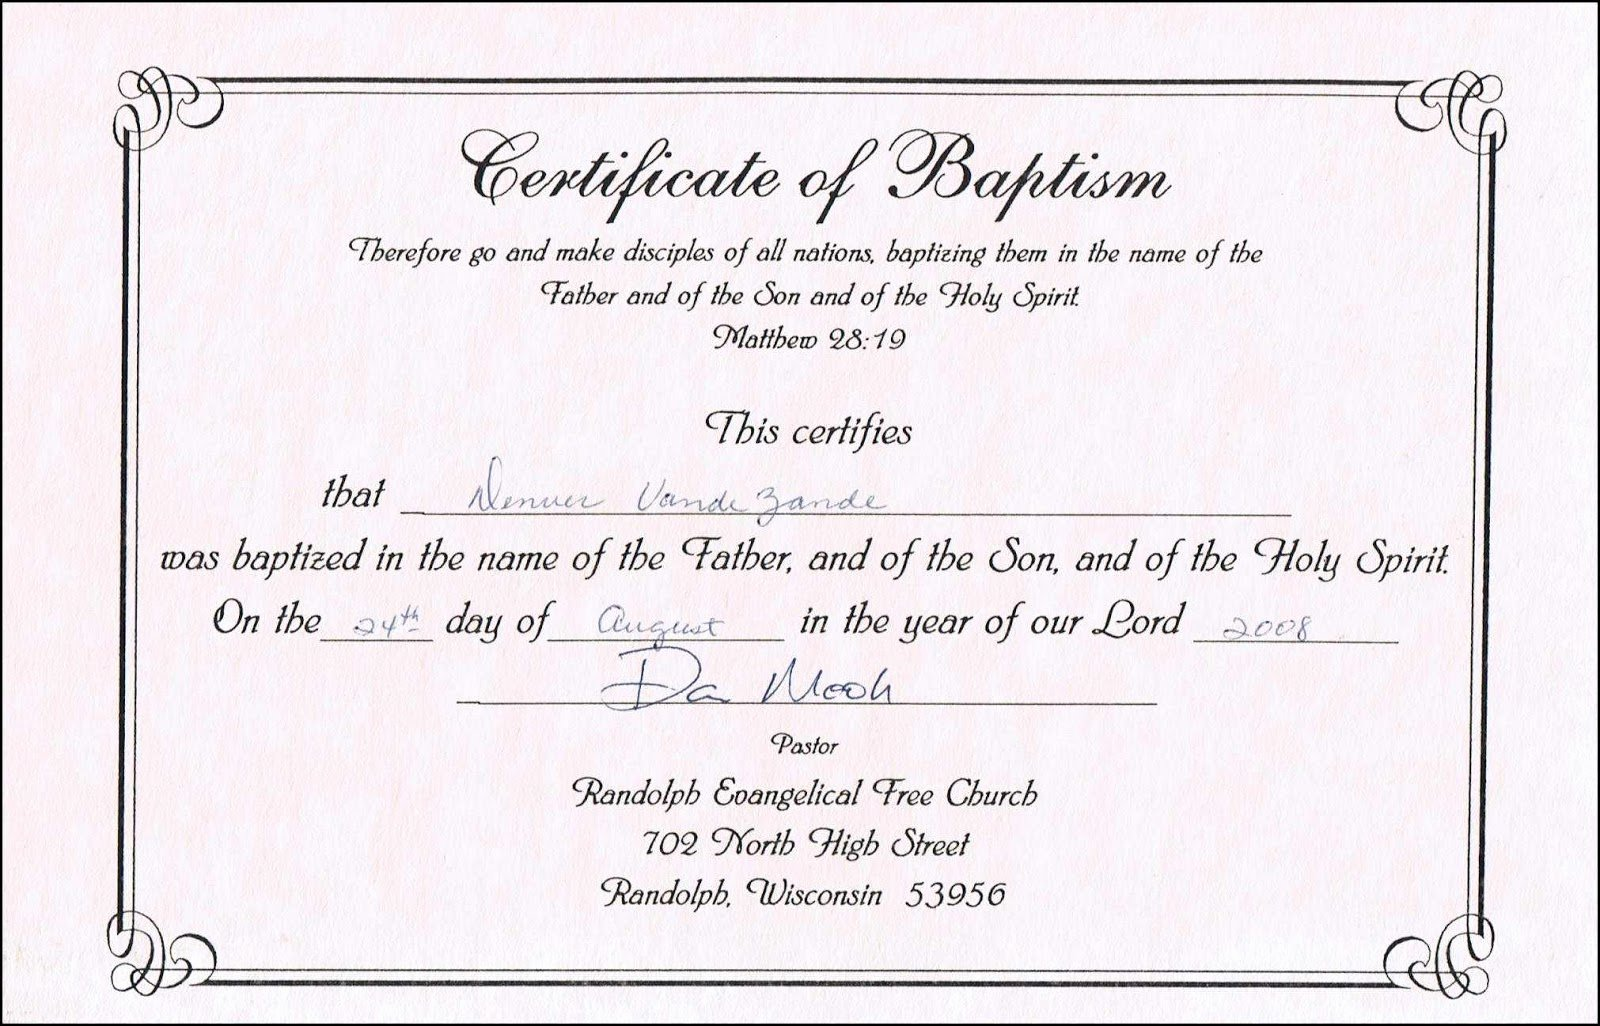 Baptism Certificate Templates Free Download Inspirational Sample Baptism Certificate Templates